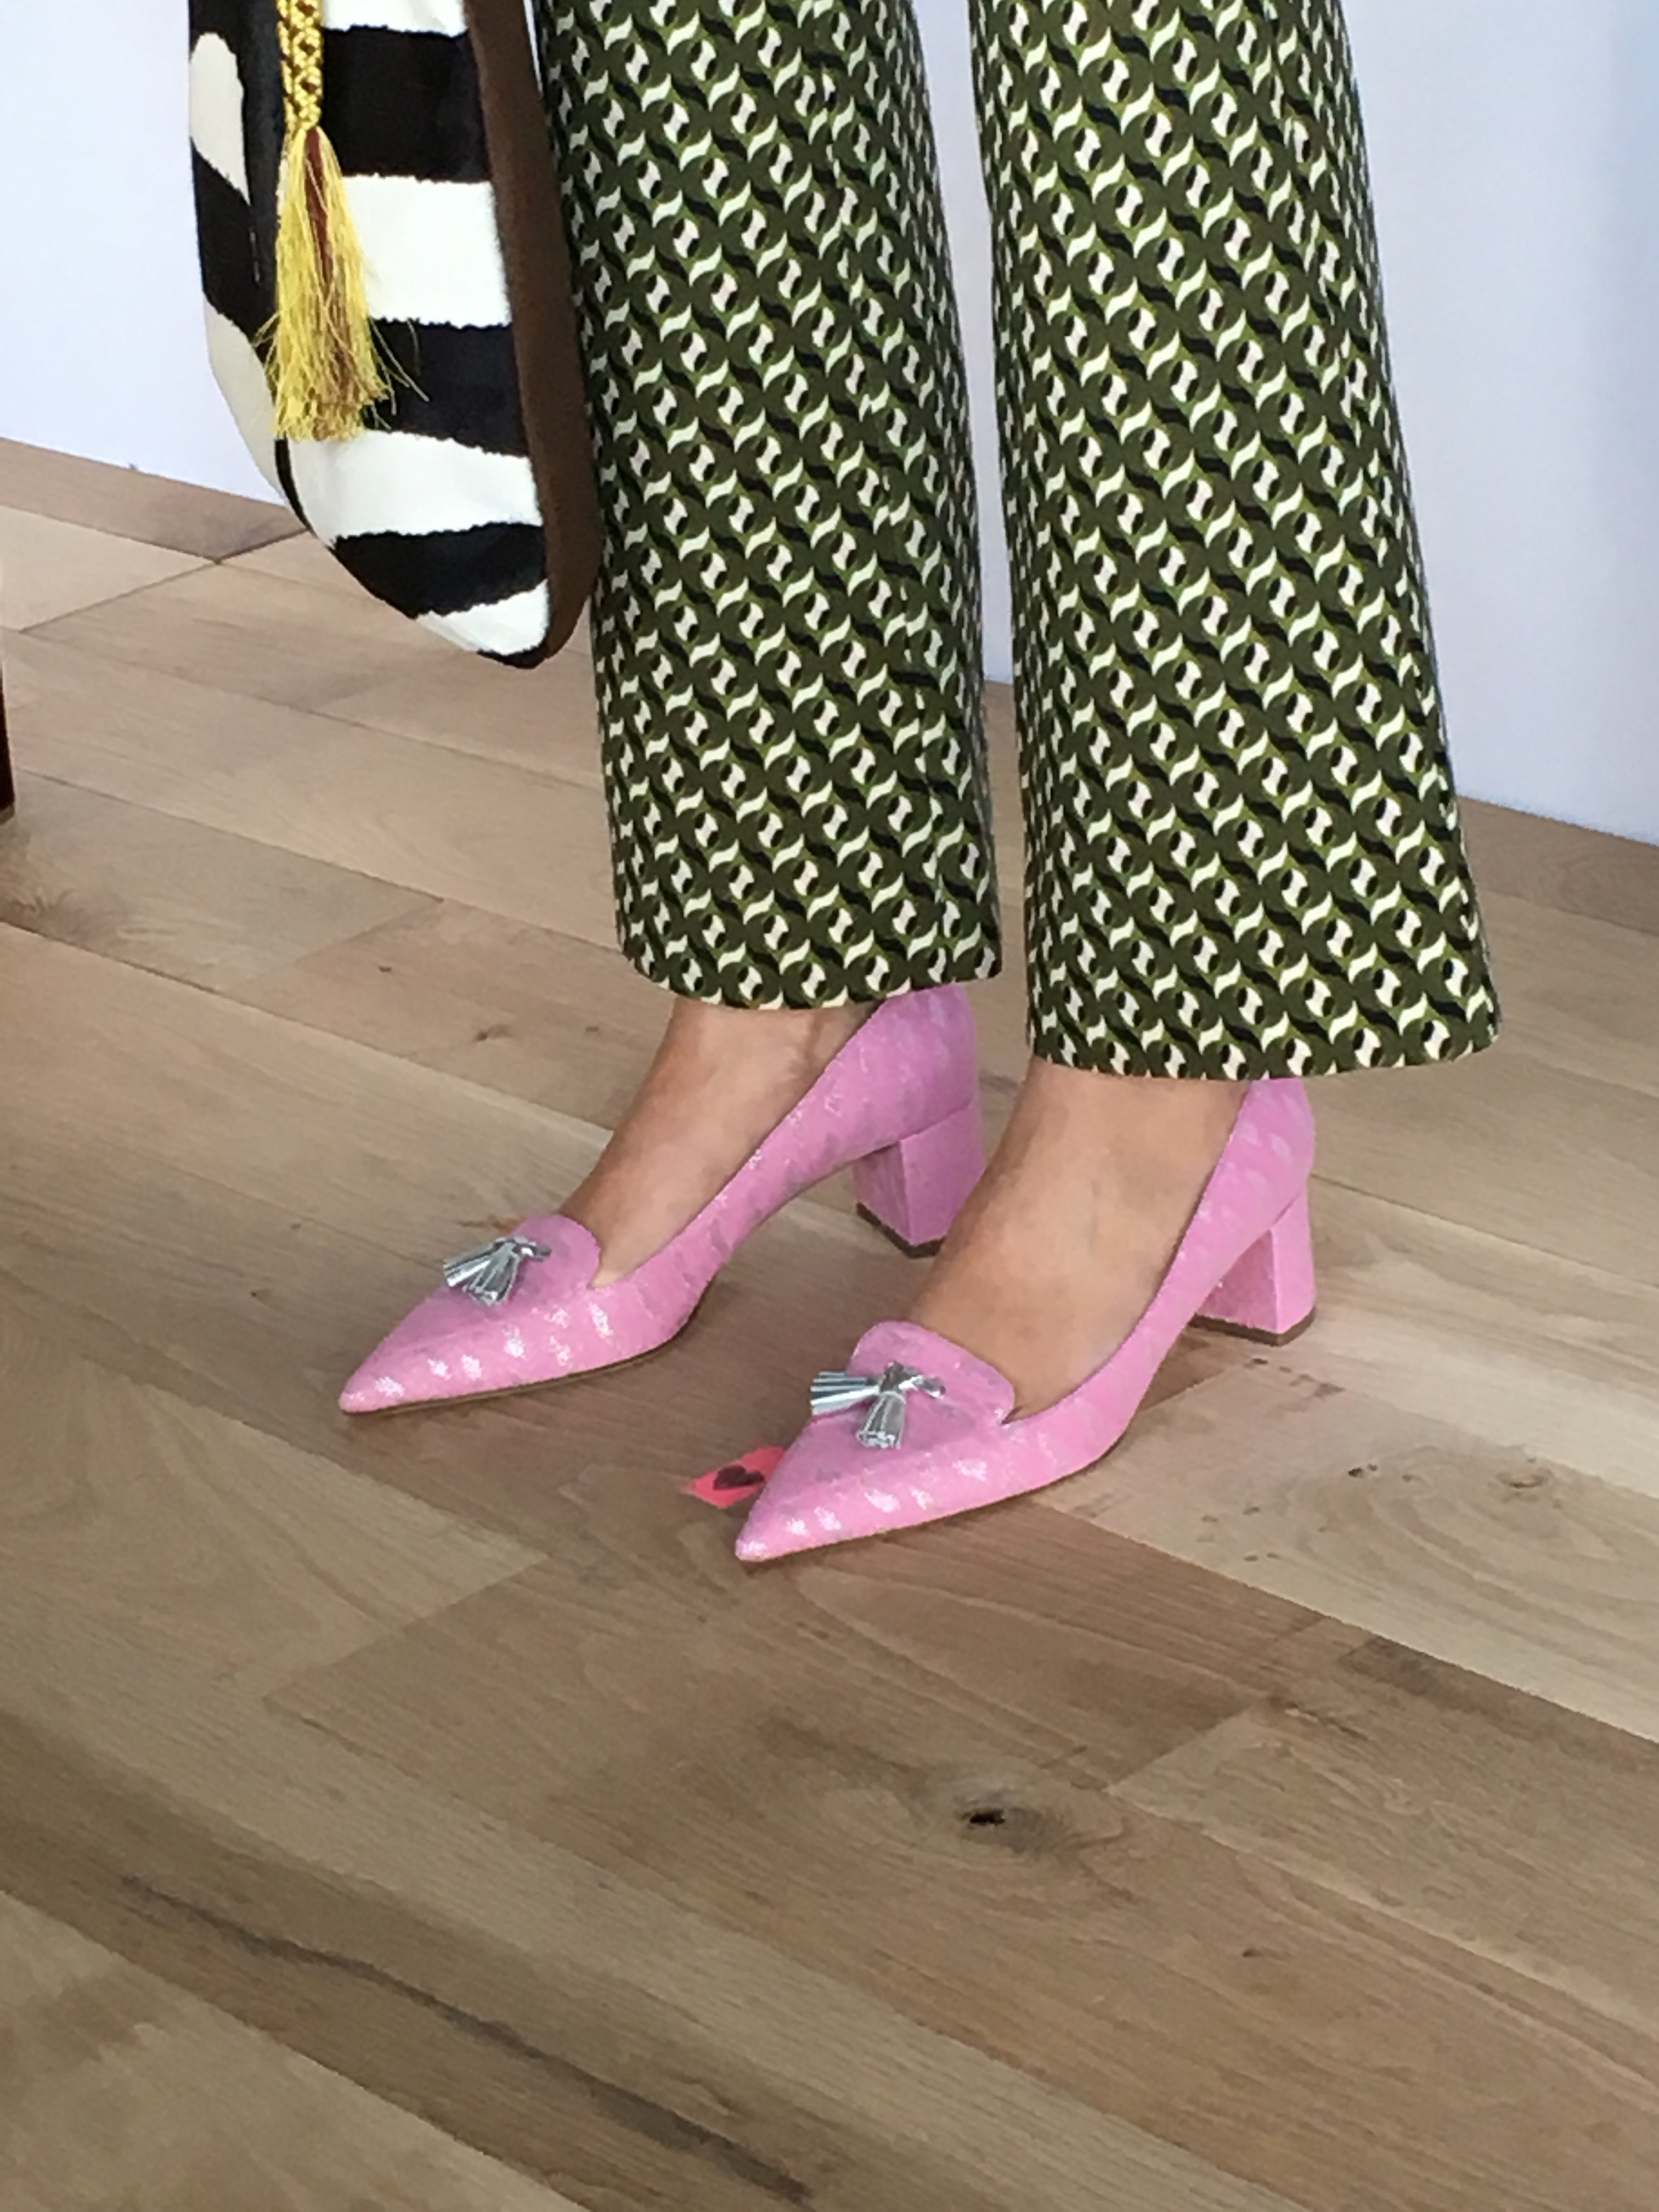 get-the-look-j-crew-nyfw-fall-winter-look-shoes-1